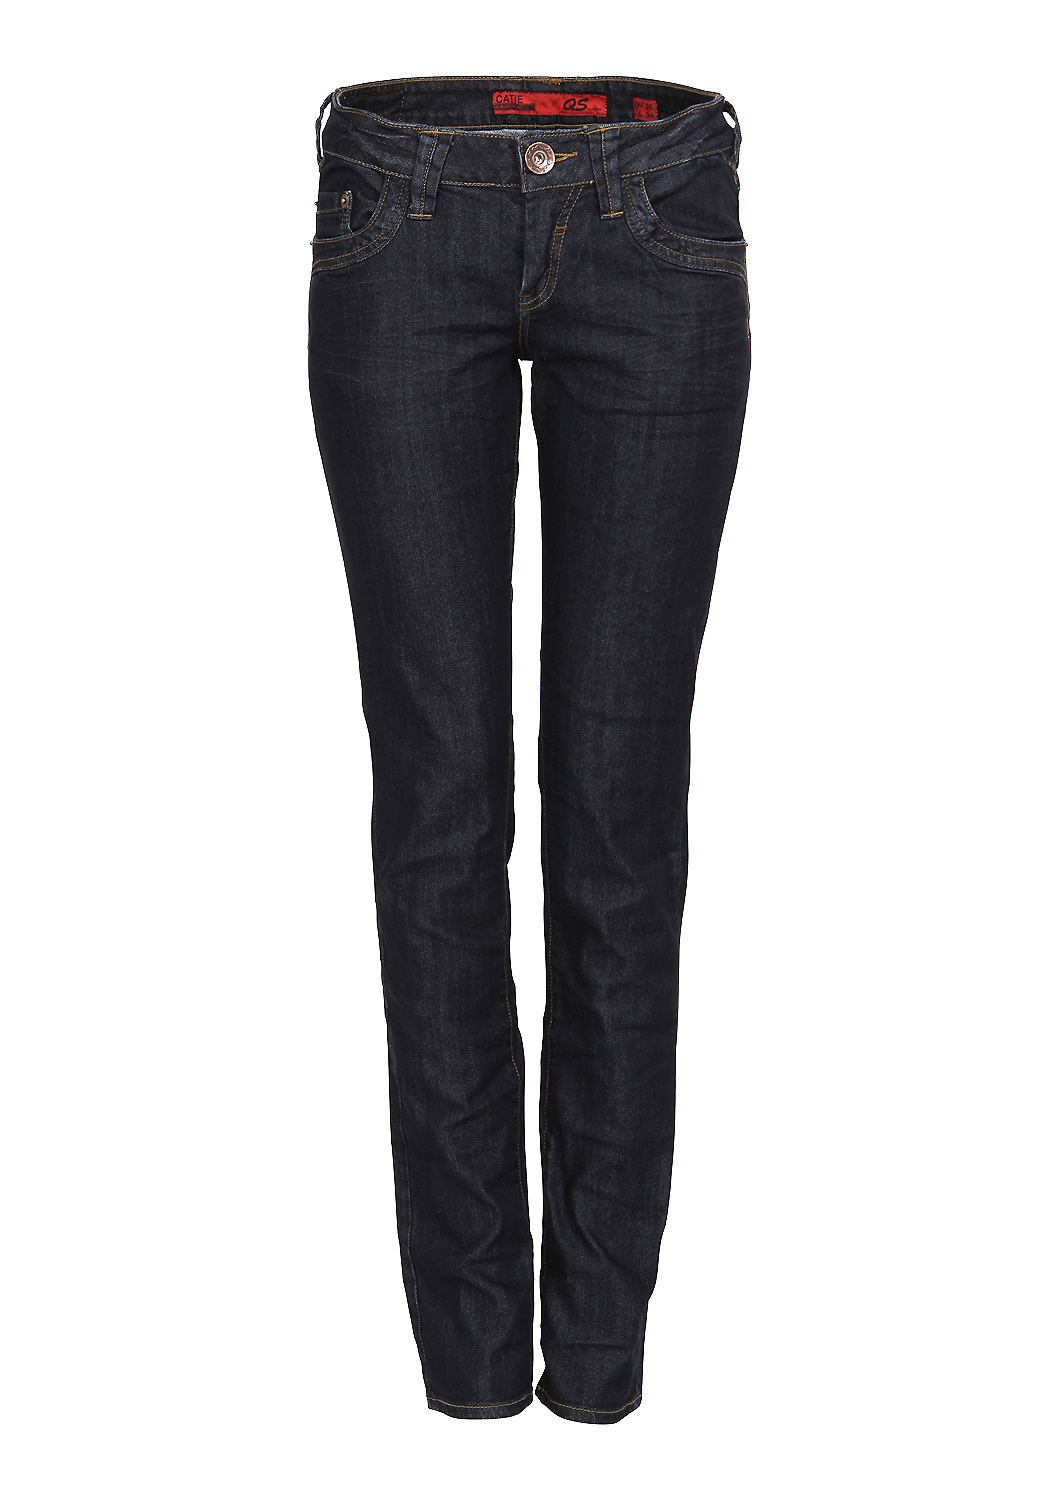 Buy Catie  Slim fit jeans with a low rise waist   s.Oliver shop 944e707047e6